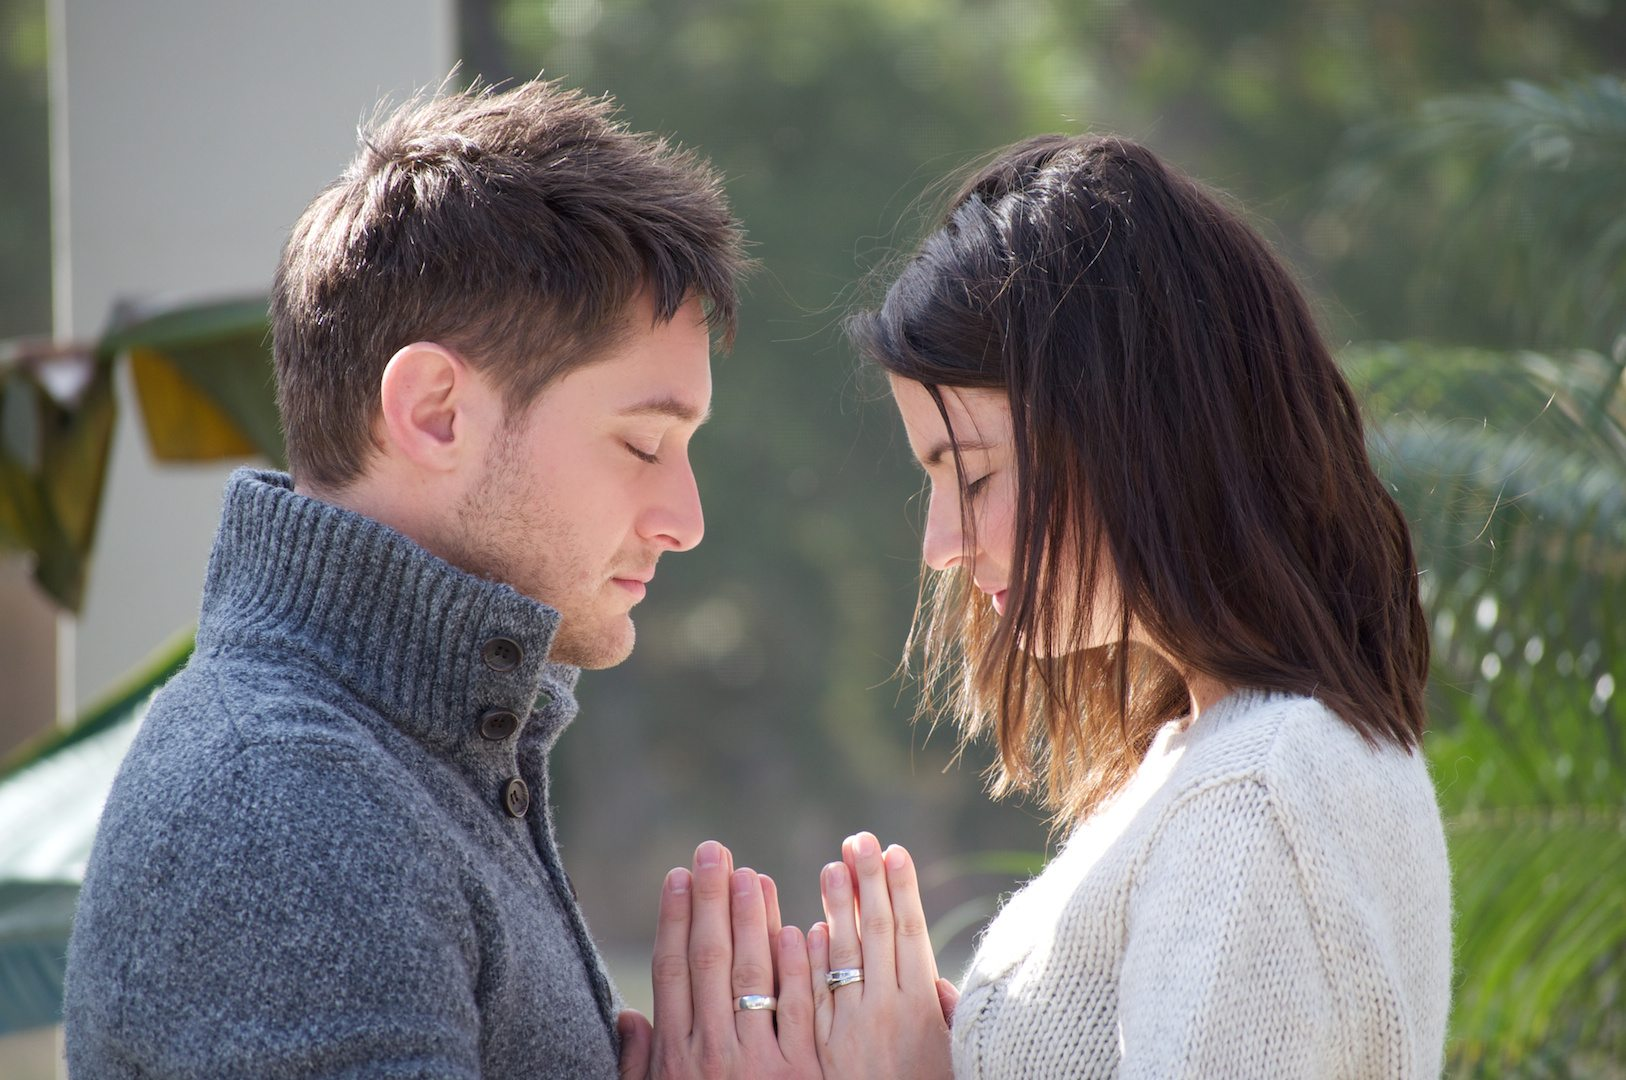 How to pray together as a dating couple